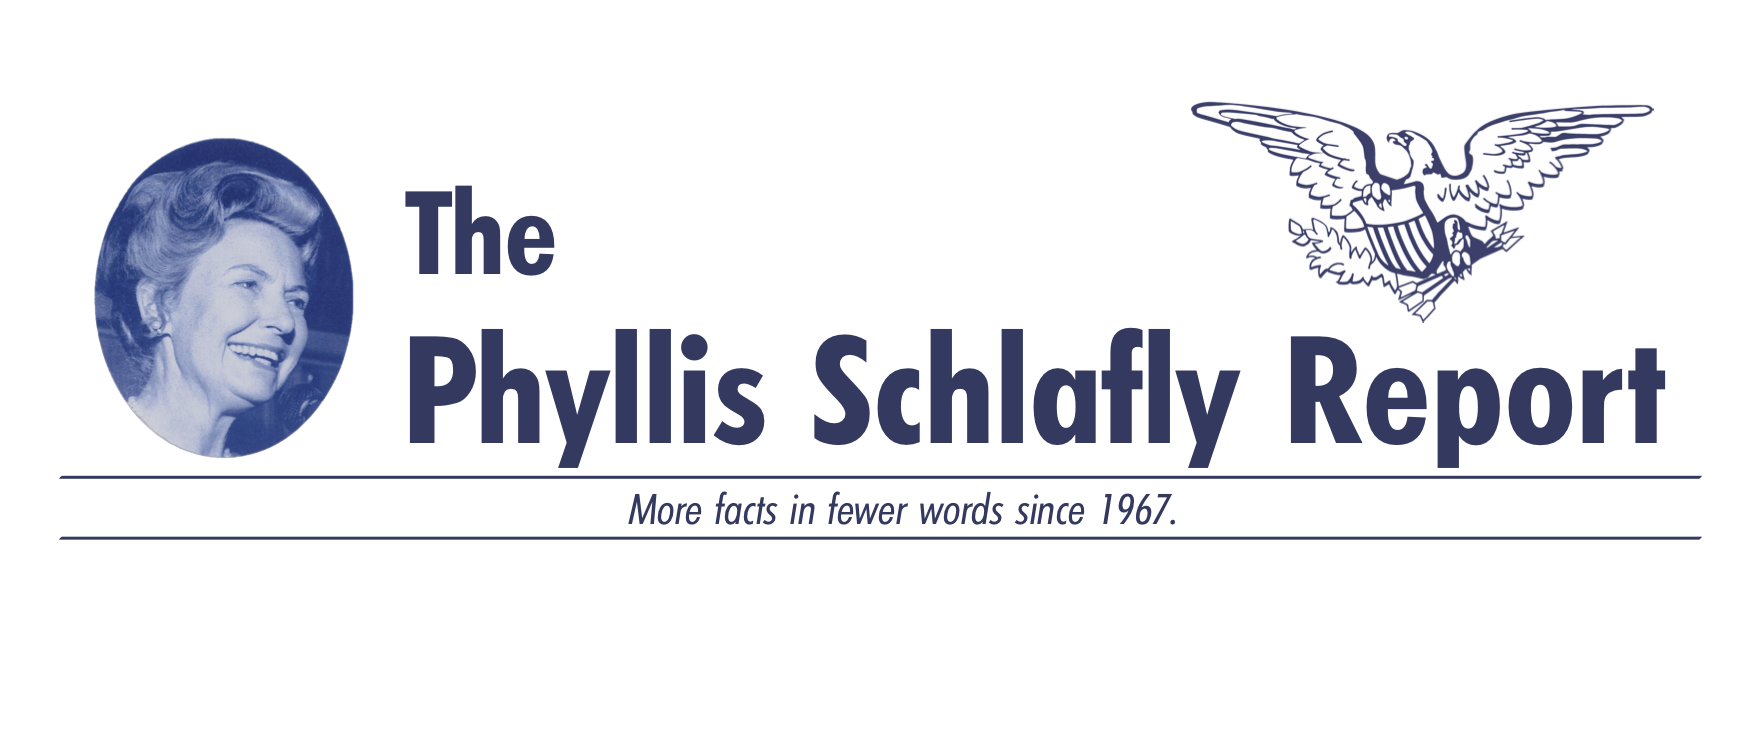 Phyllis Schlafly Report